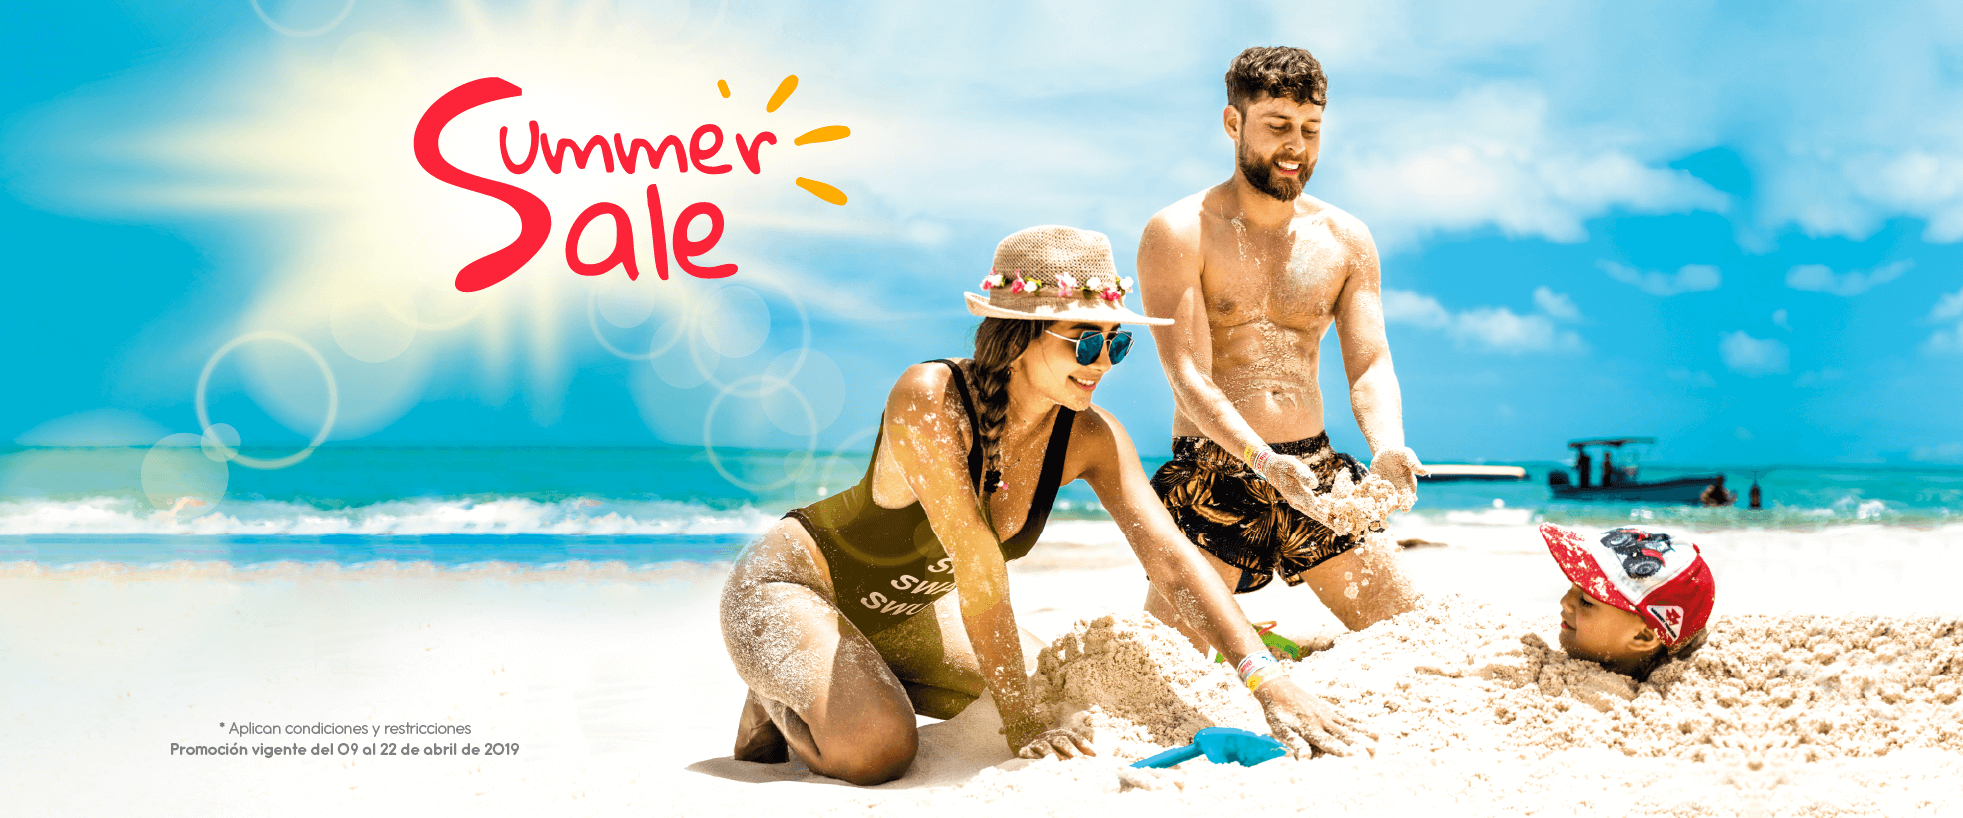 On Vacation - Promociones - Summer Sale